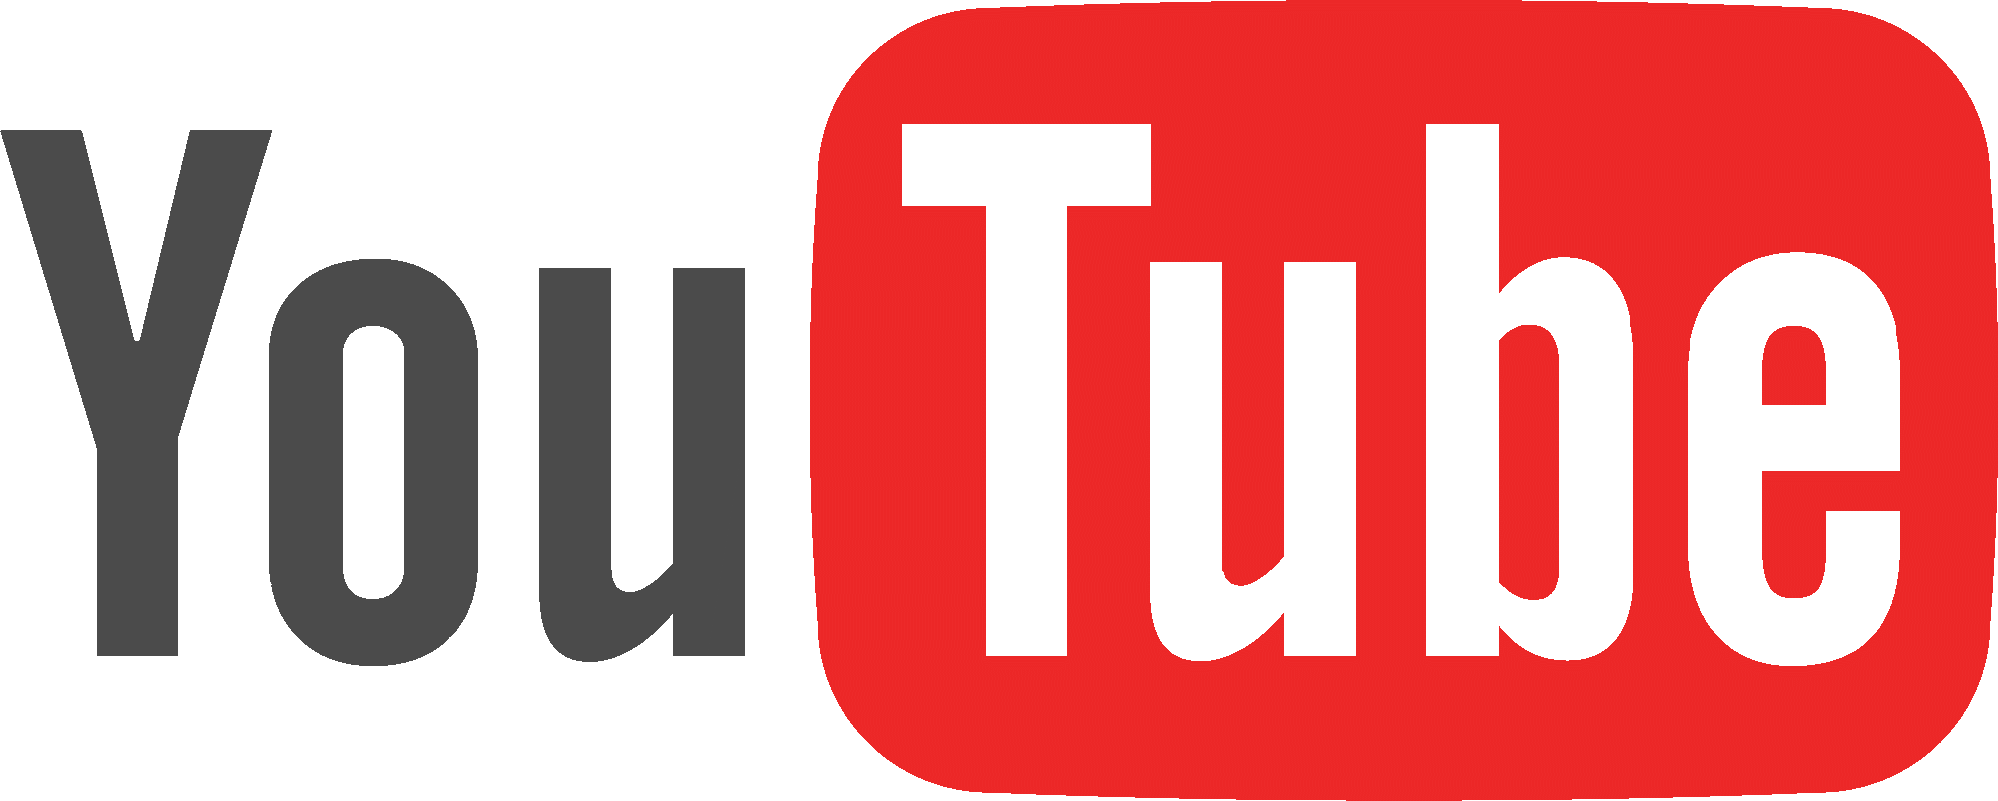 Image result for youtube clipart